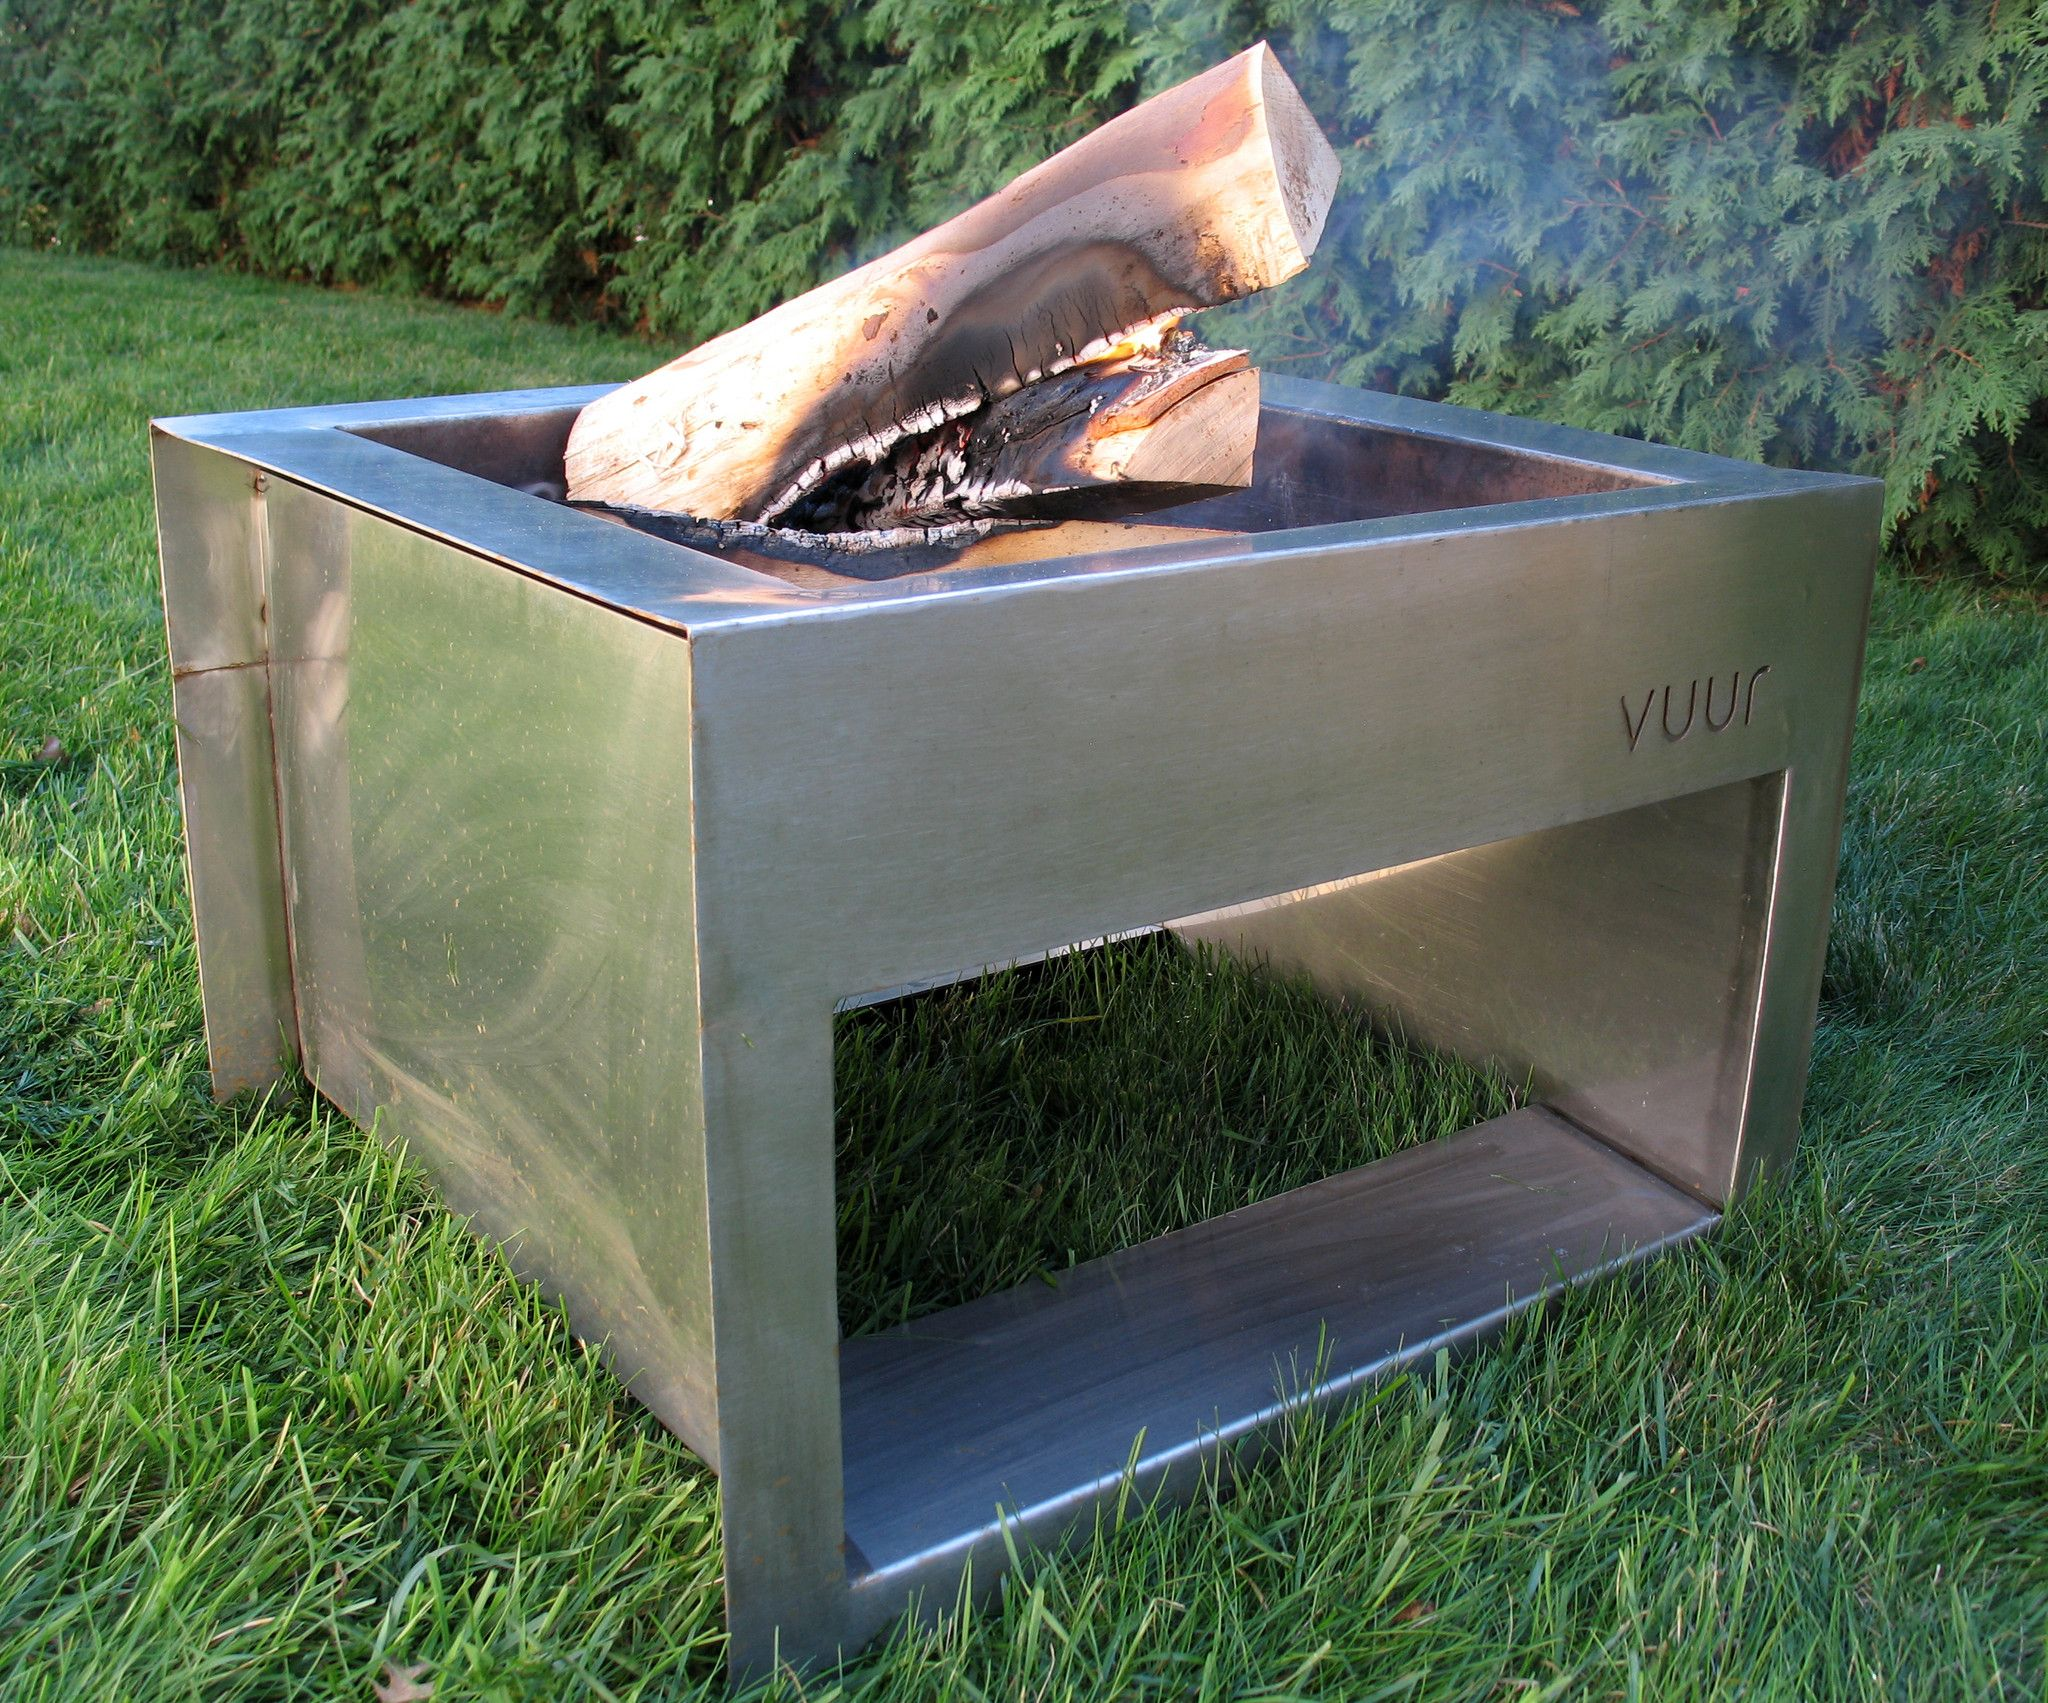 6b25d2f7a0b2544f385878bb1a04c750 Top Result 50 Awesome Stainless Steel Fire Pit Pic 2018 Zzt4